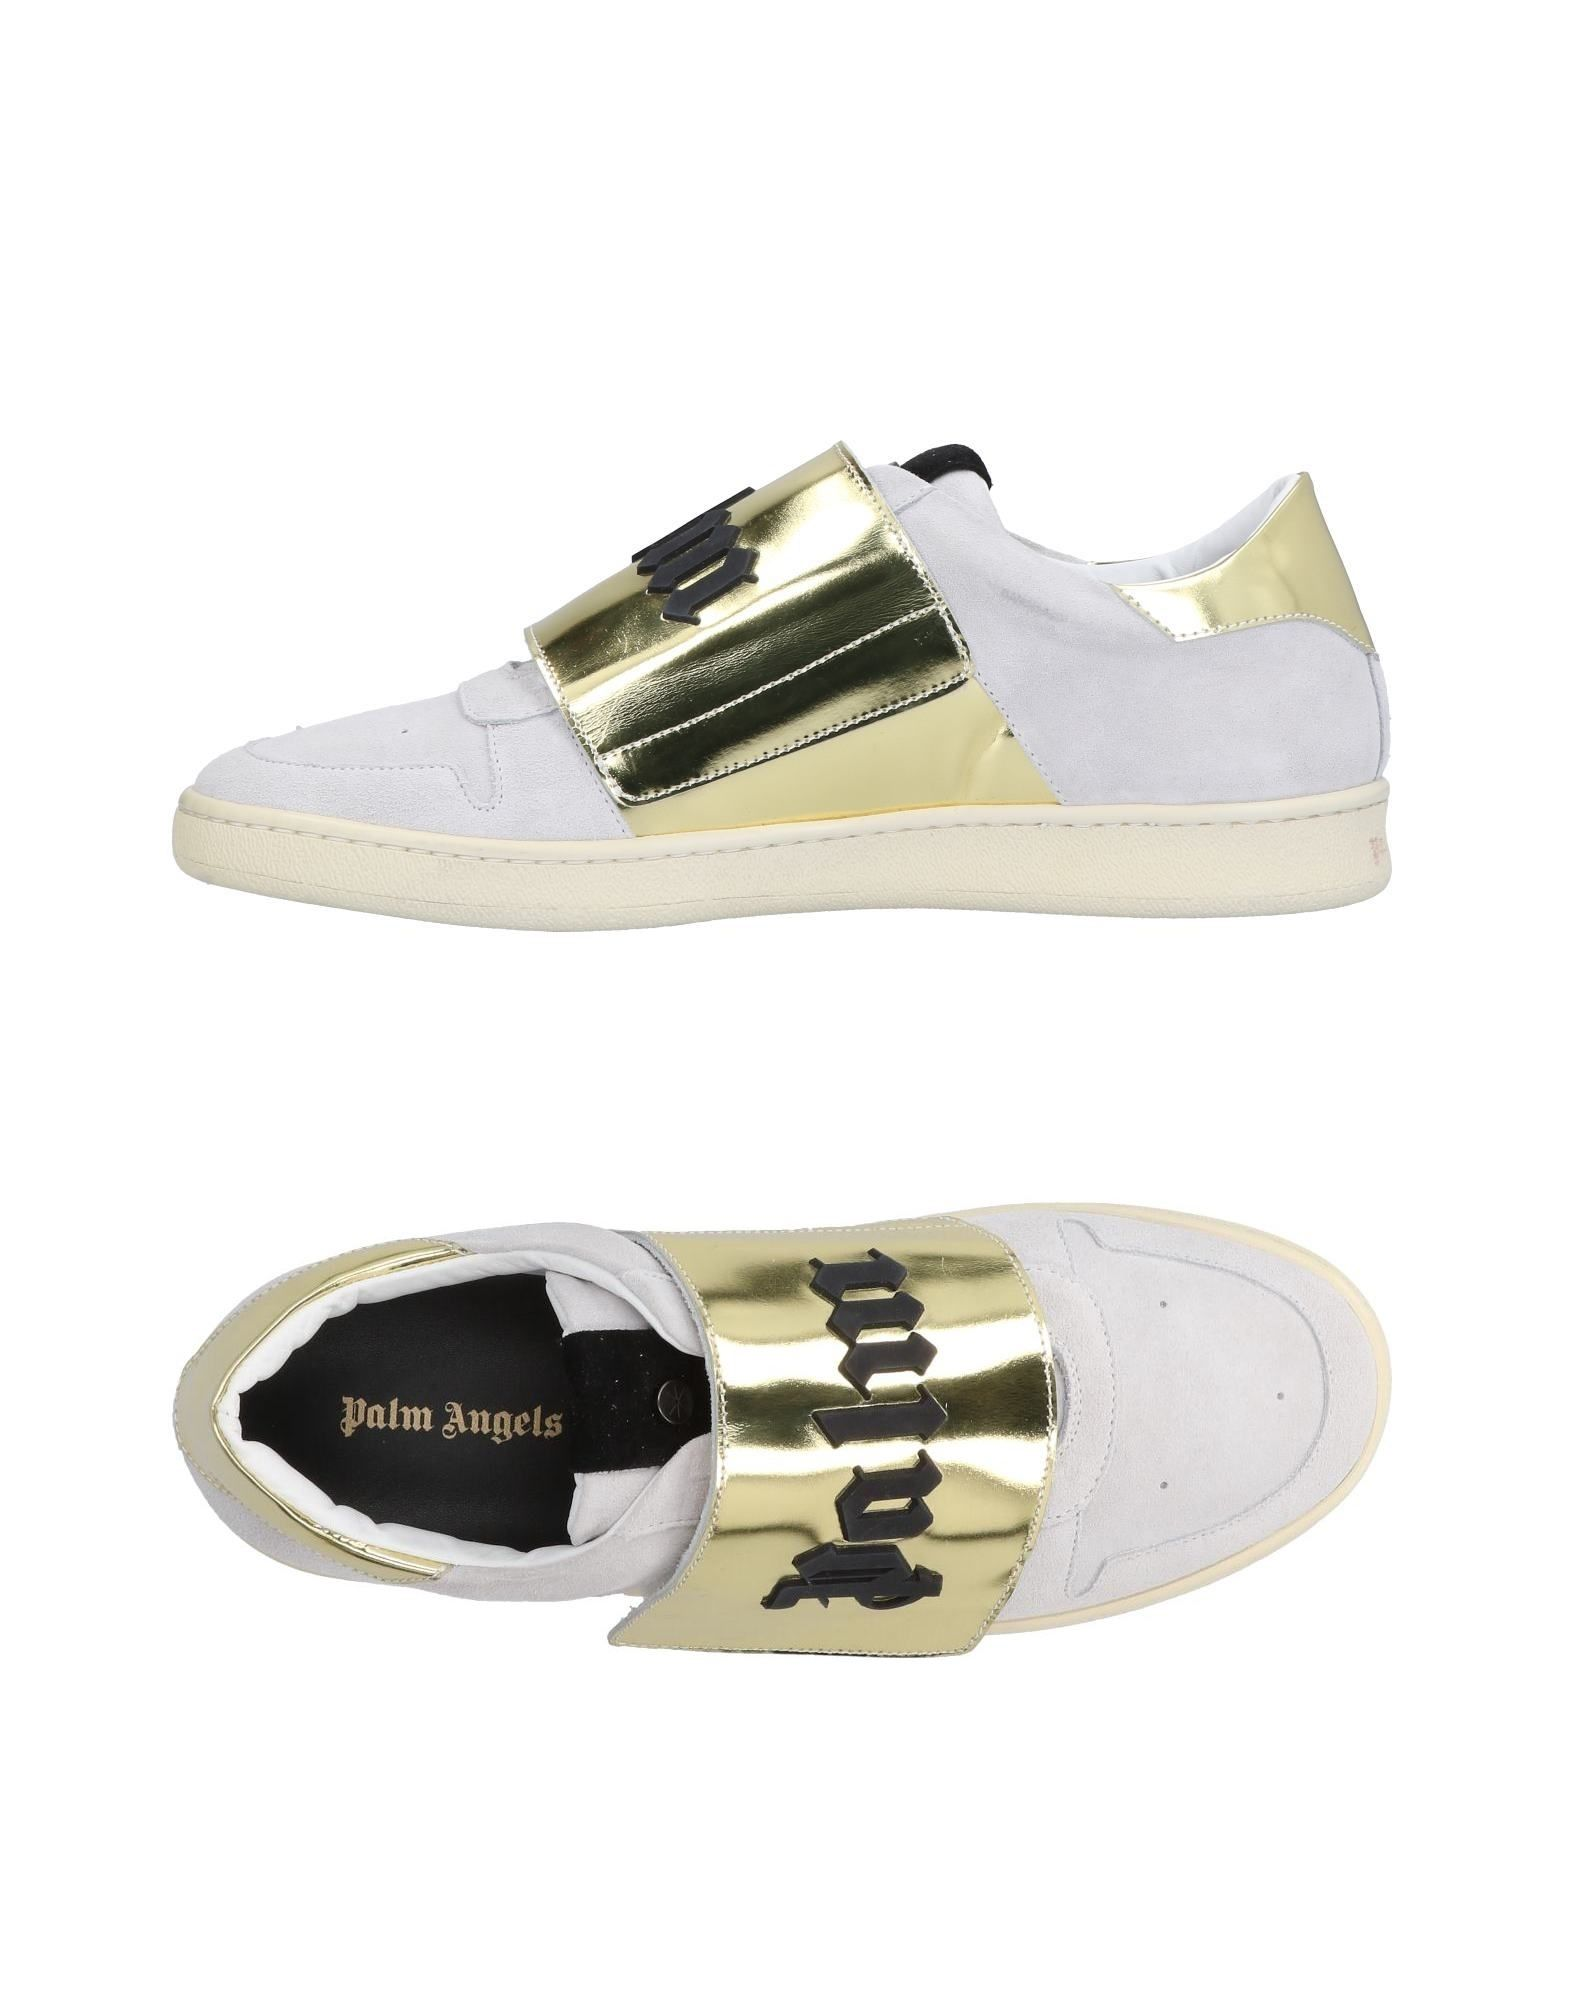 Palm Angels Sneakers Sneakers - Men Palm Angels Sneakers Sneakers online on  United Kingdom - 11484470IV 0e0314